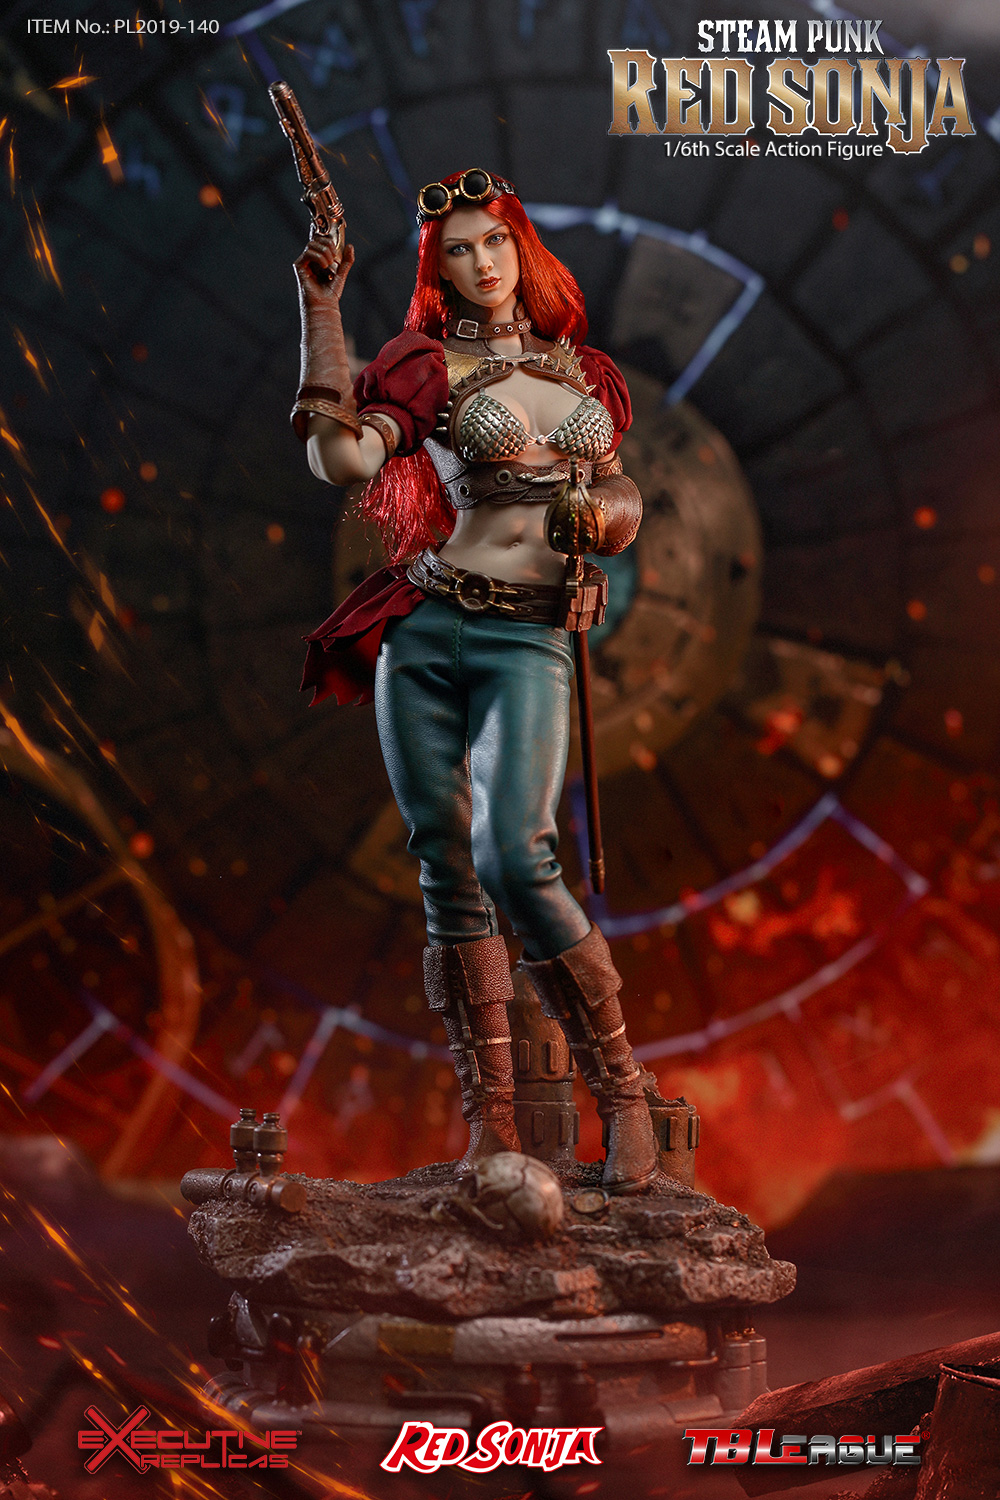 steampunk - NEW PRODUCT: TBLeague: 1/6 Steam Punk - Red Sonja / Queen Excalibur [punk version] PL2019-140-A/B 20192310